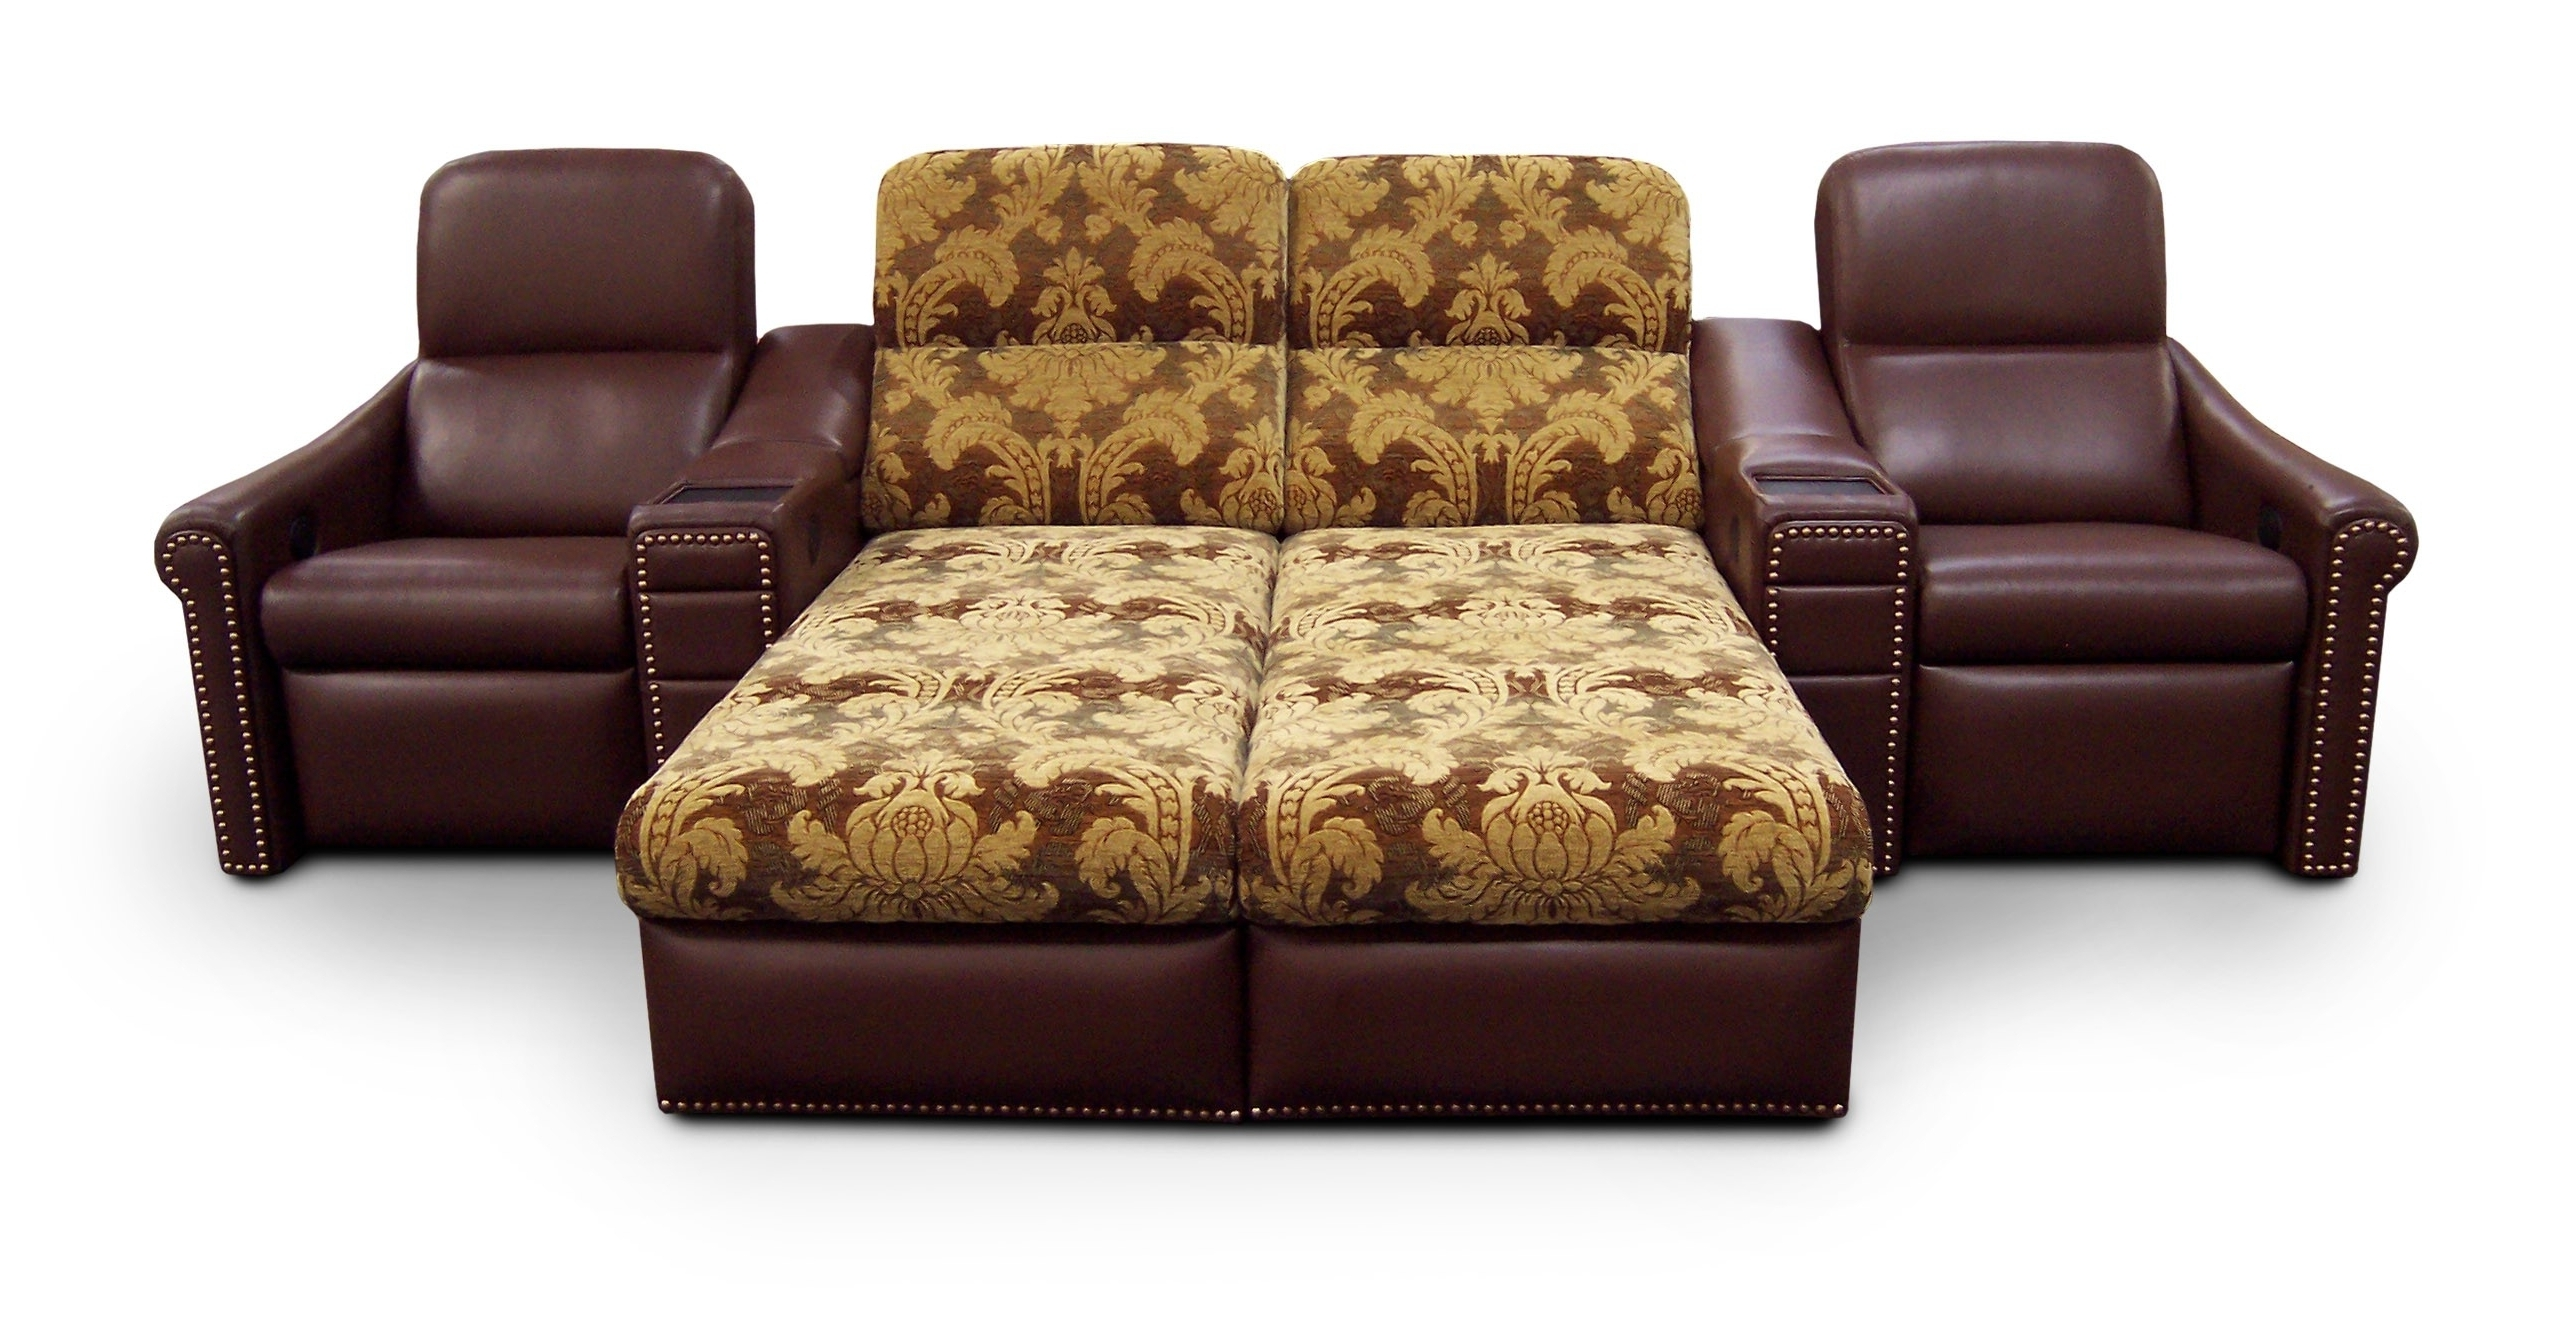 Widely Used Oversized Chaise Lounge Sofas With Double Chaise Lounge Sofa Decorators Systems – Surripui (View 15 of 15)